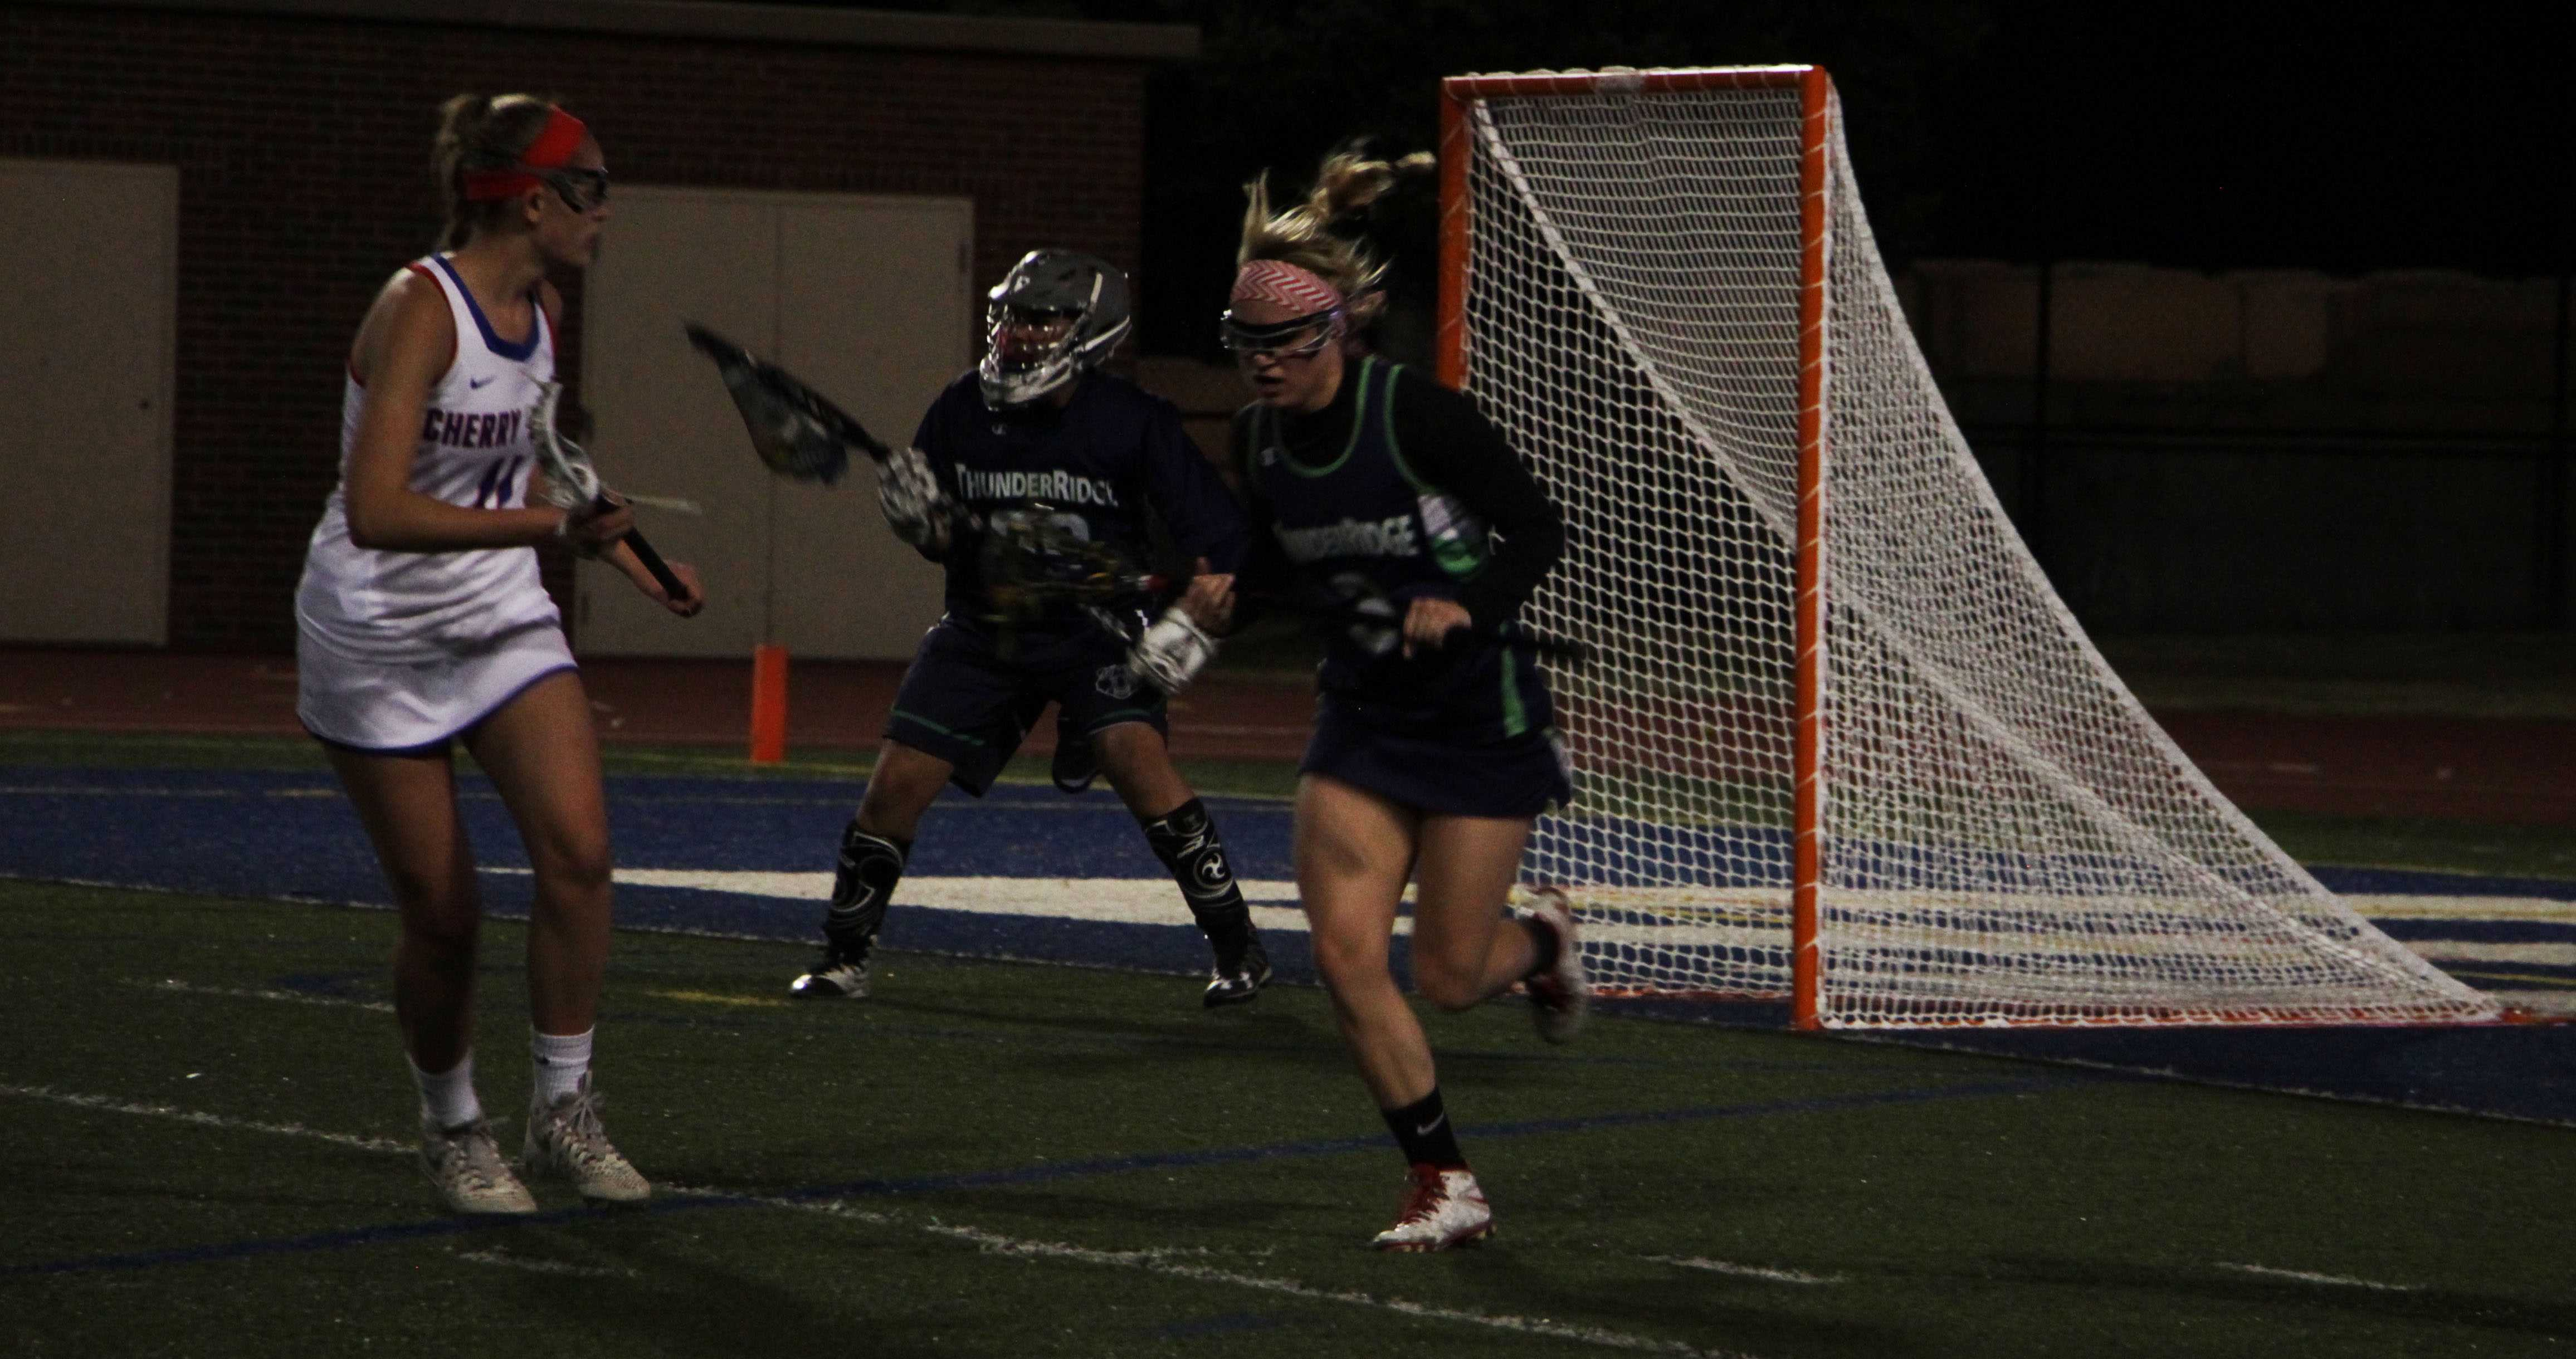 PHOTOS: First Varsity Girls Lacrosse Game